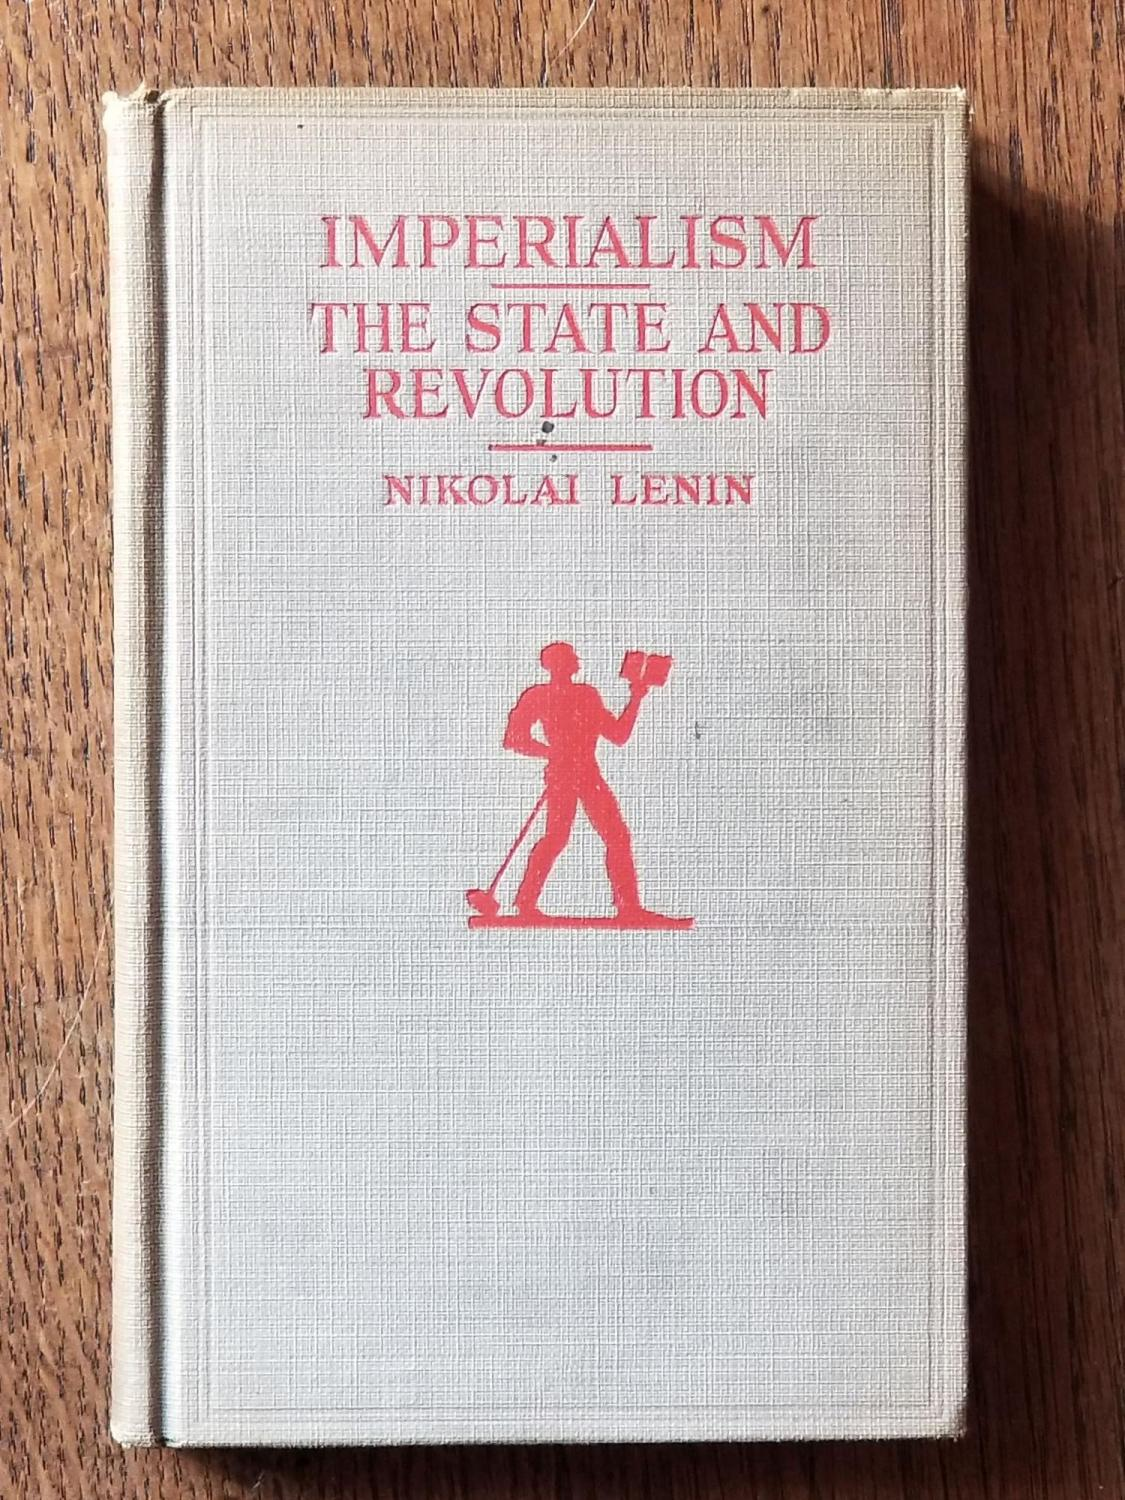 Imperialism_and_The_State_and_Revolution_LENIN_Nikolai_Vladimir_Ilyich_Very_Good_Hardcover